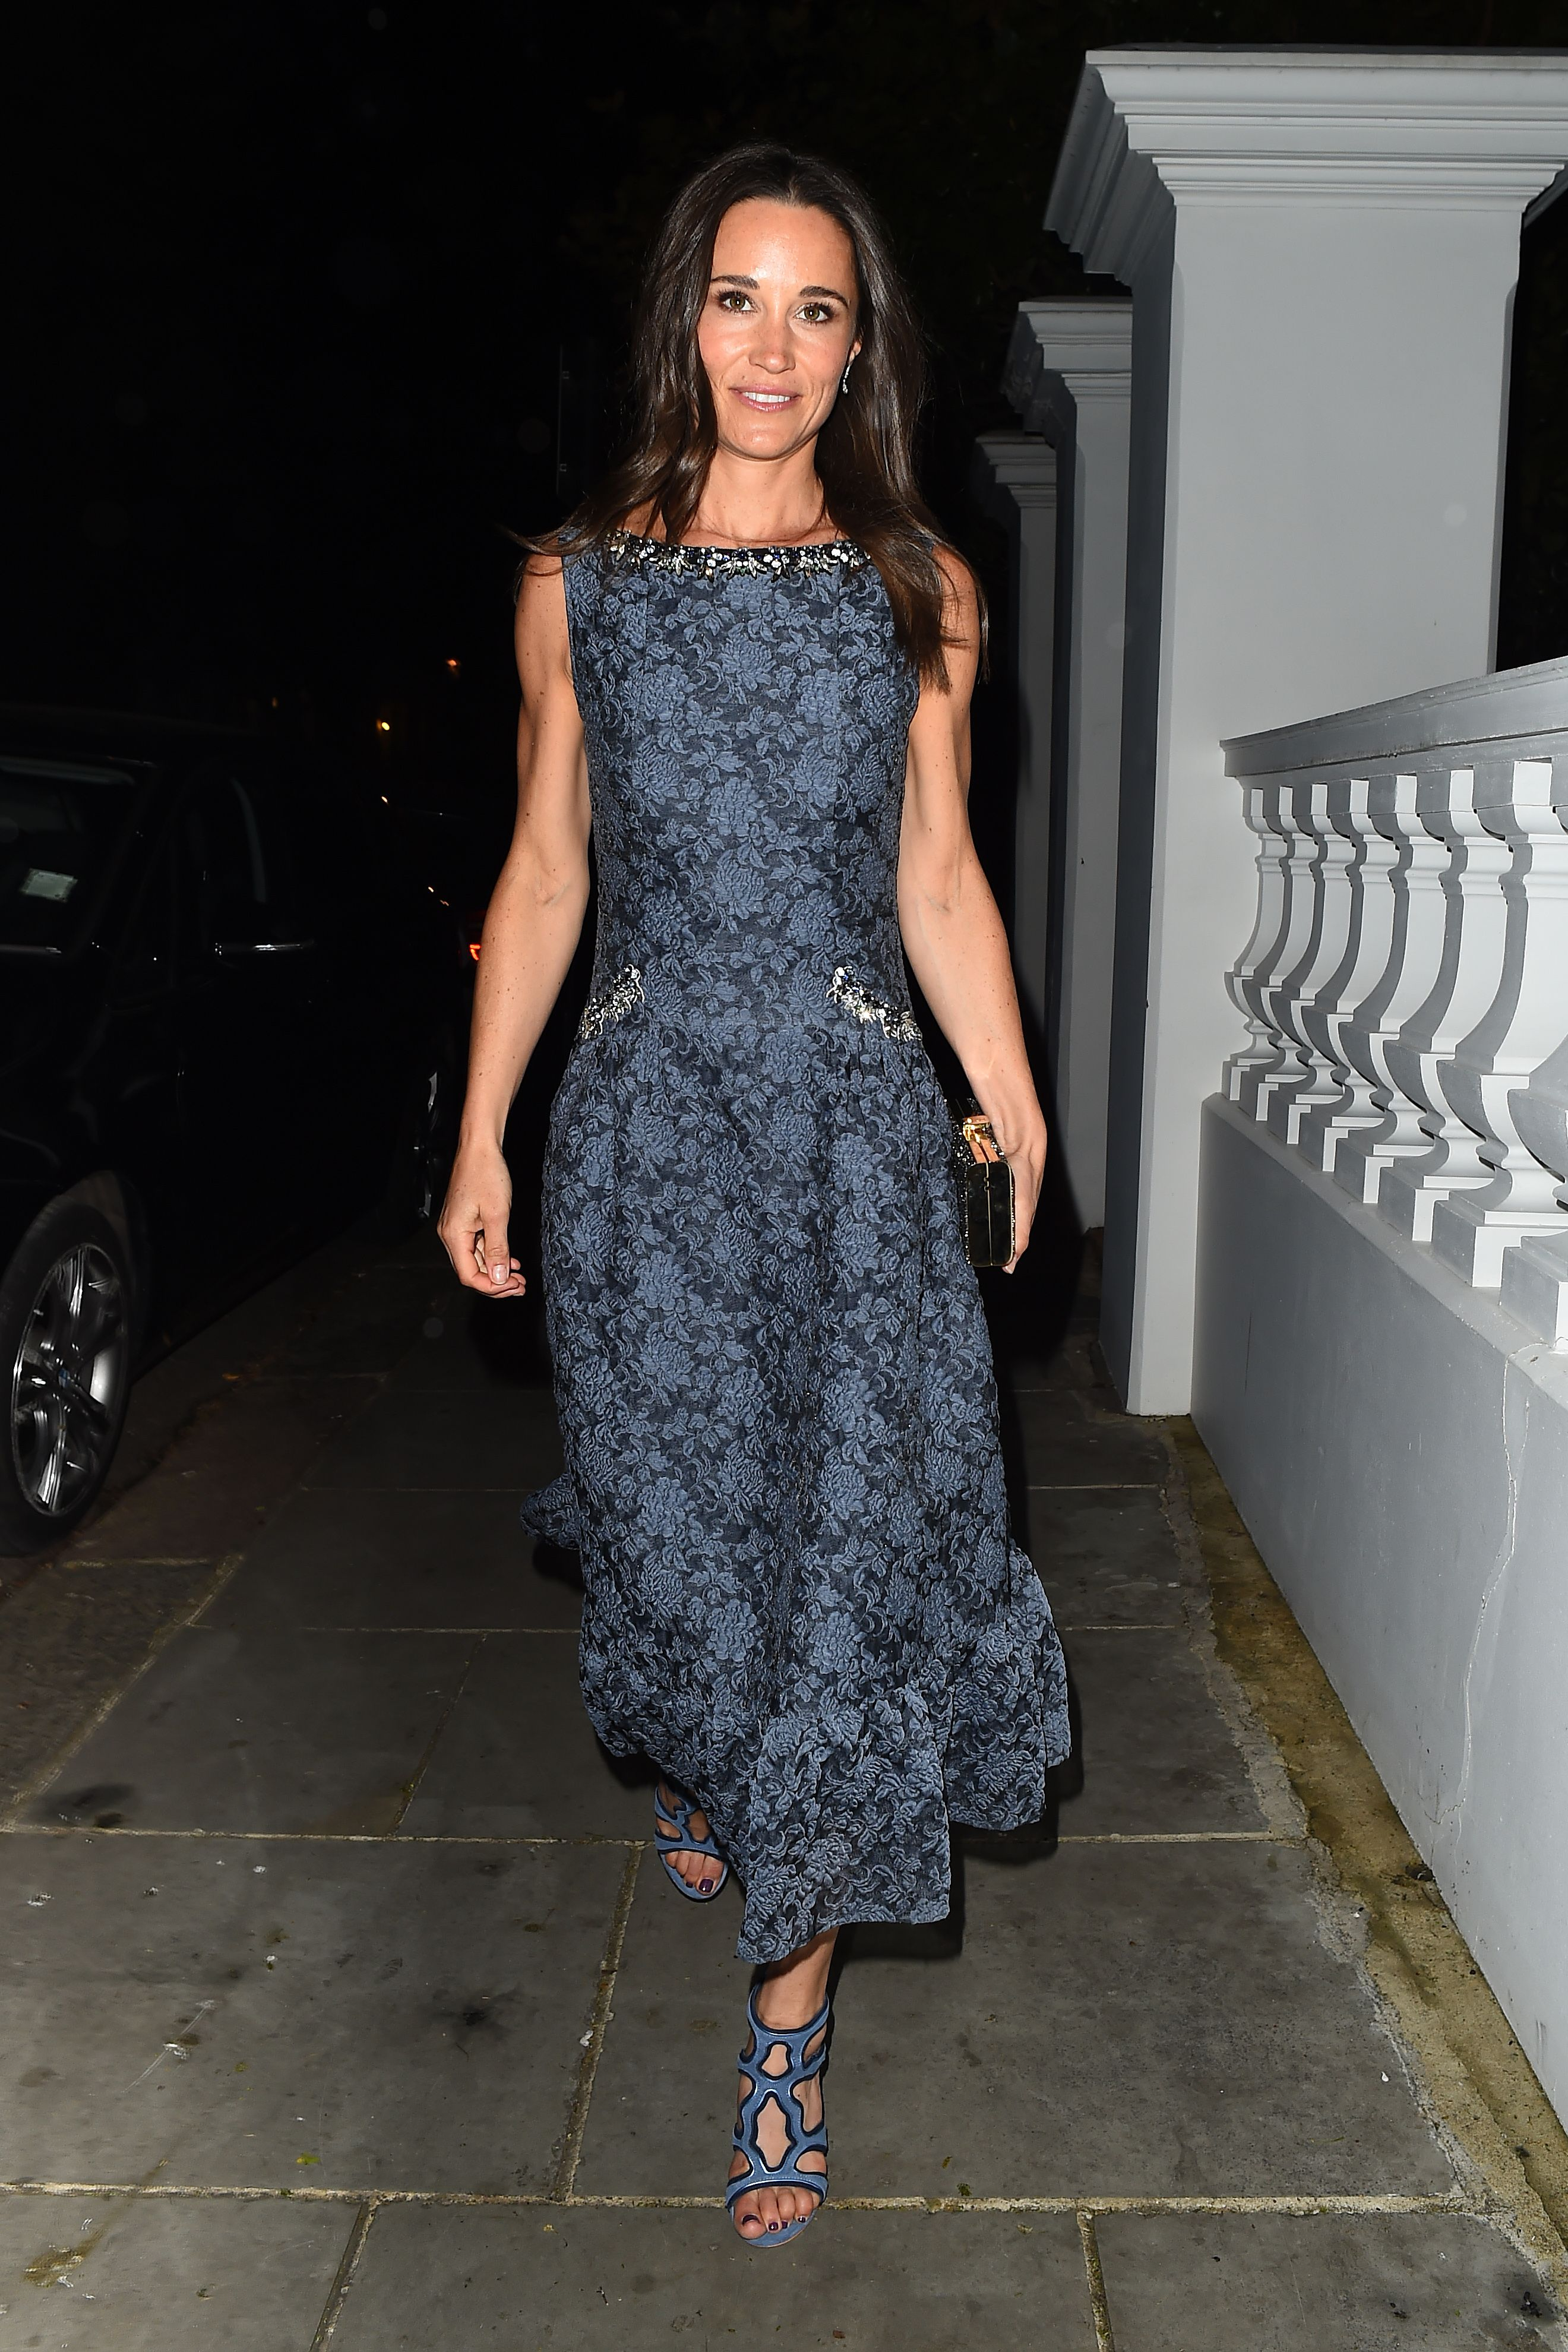 Pippa Middleton at the ParaSnowBall fundraiser held at the Hurlingham Club London